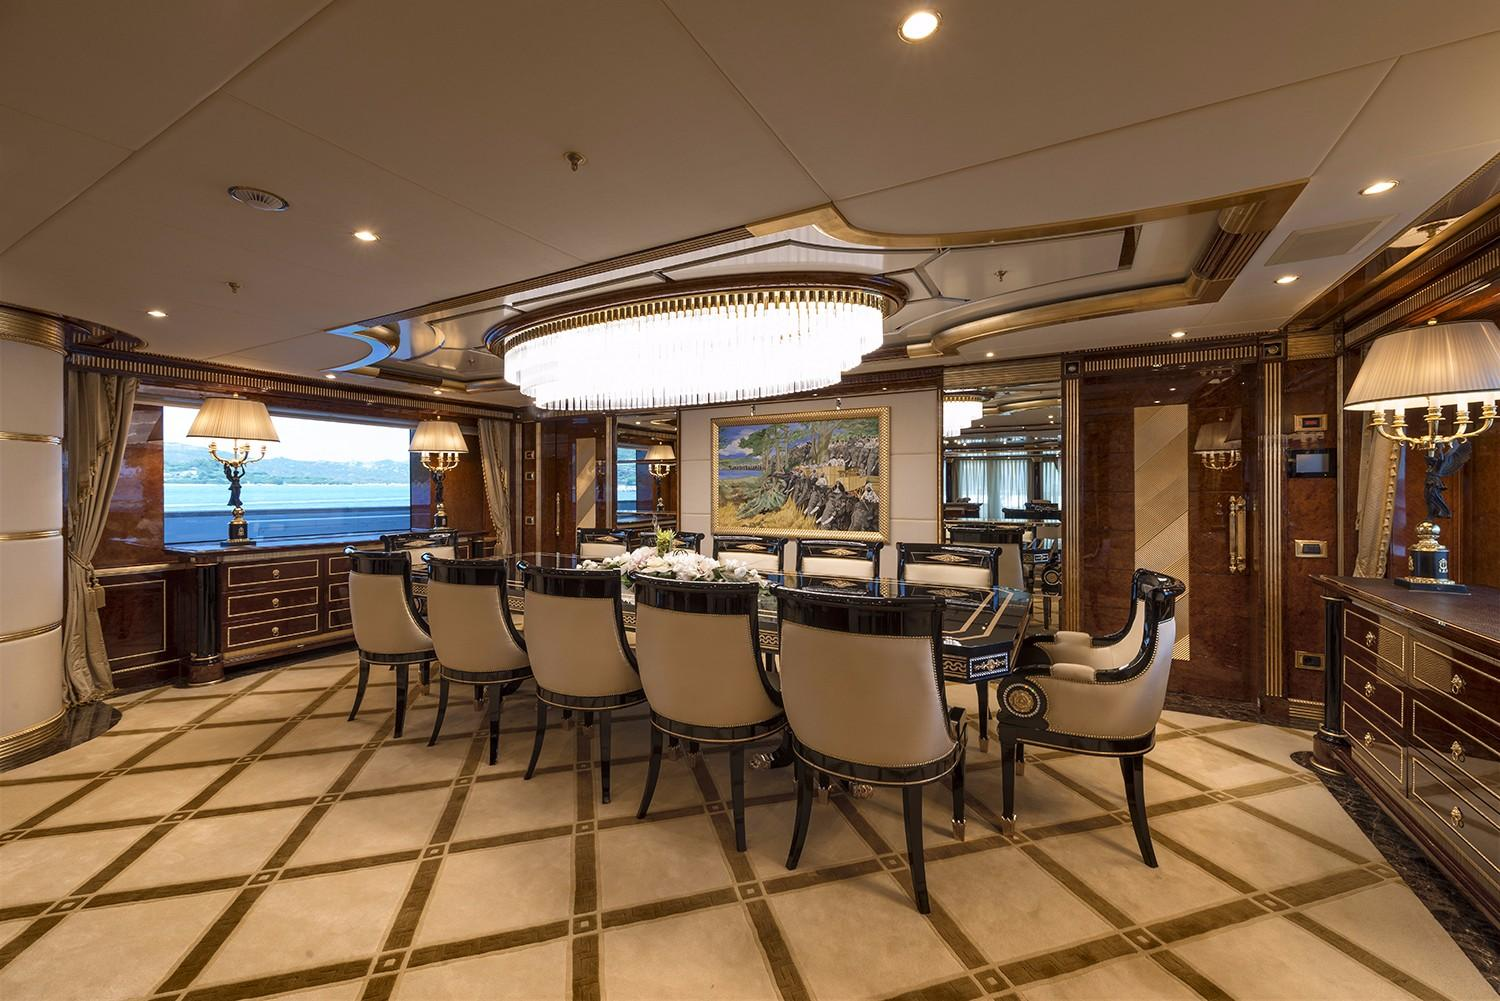 Formal Dining Area With A Beautiful Large Table And Plush Seating